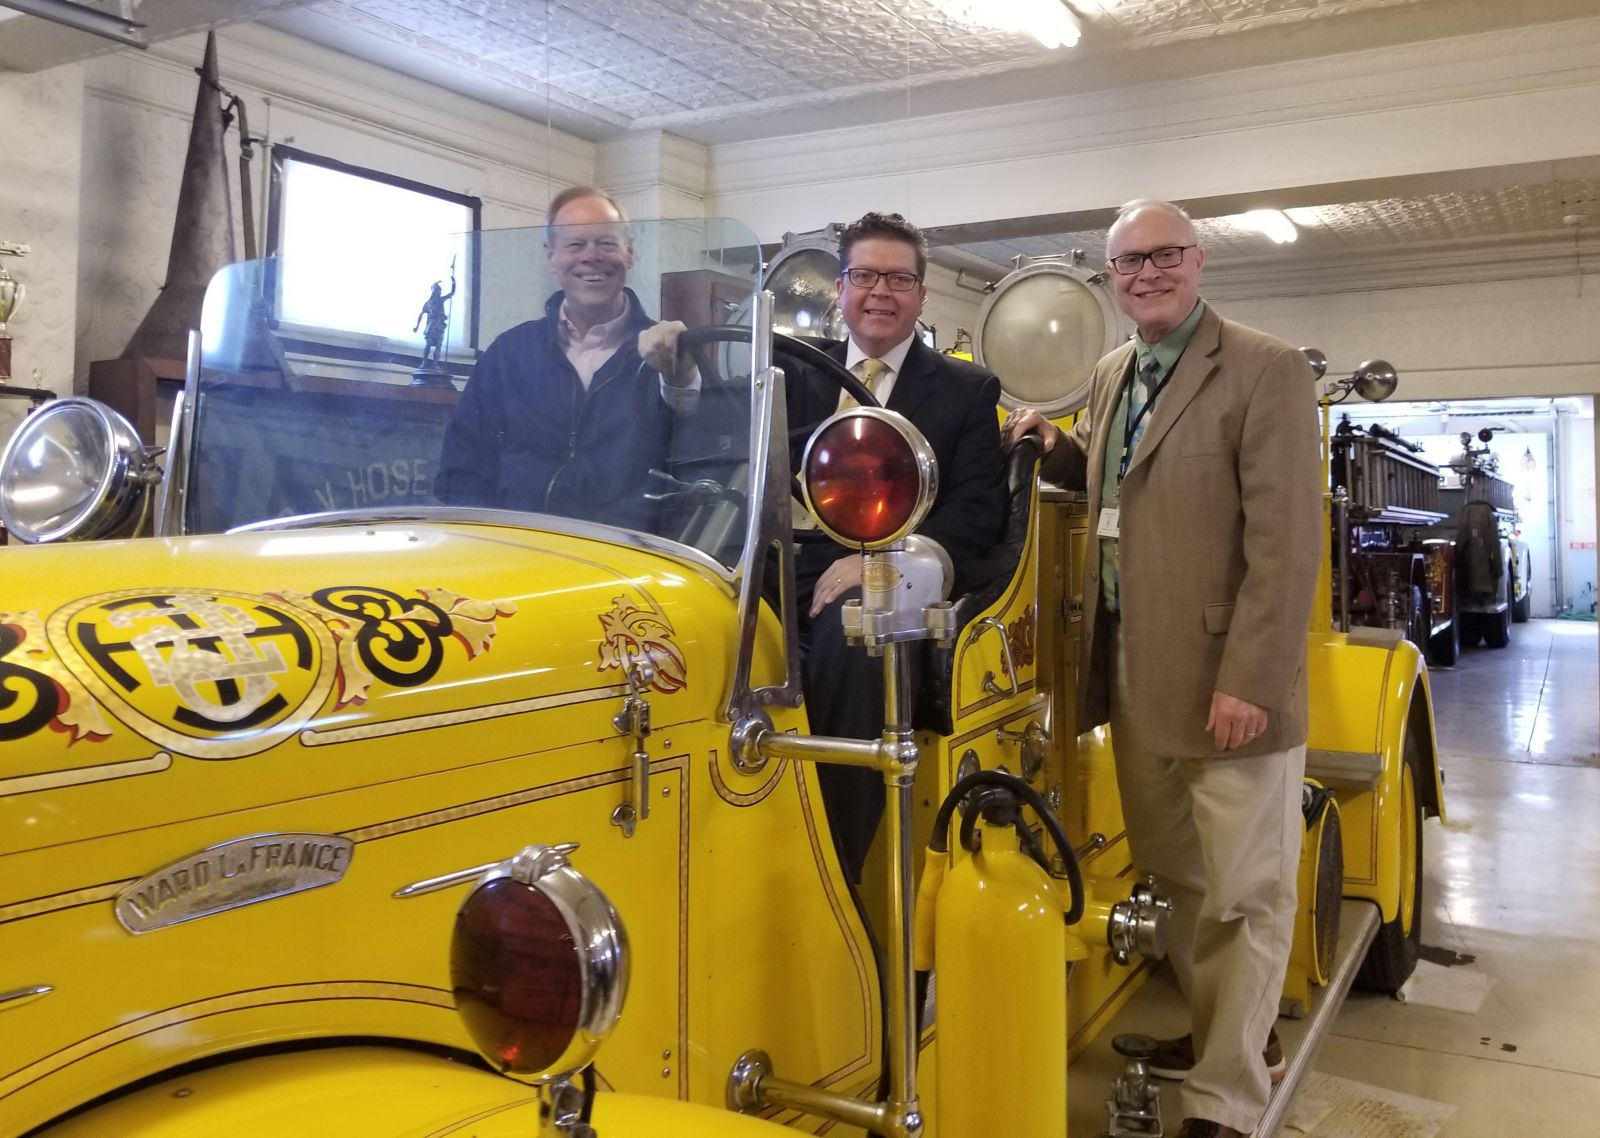 Commissioner Bob Ziobrowski, Commissioner Chairman Dave Keller, and Commissioner Bob Thomas in a fire truck at the Chambersburg Volunteer Fireman�s Museum.